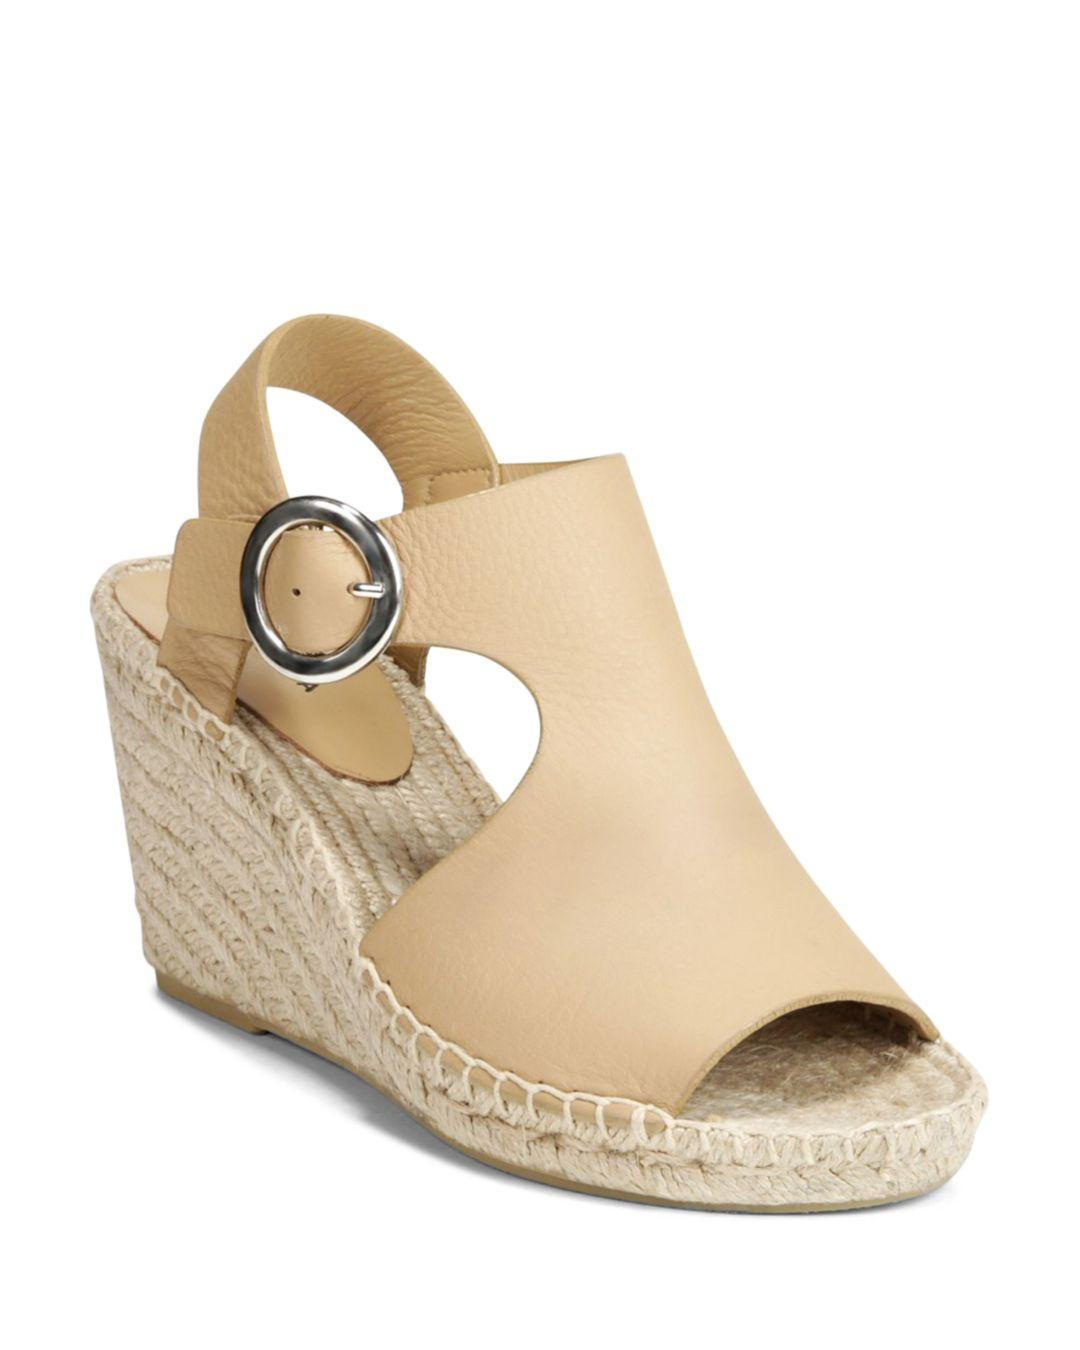 7981db228a31 Via Spiga Women s Nolan Espadrille Wedge Heel Sandals in Natural - Lyst